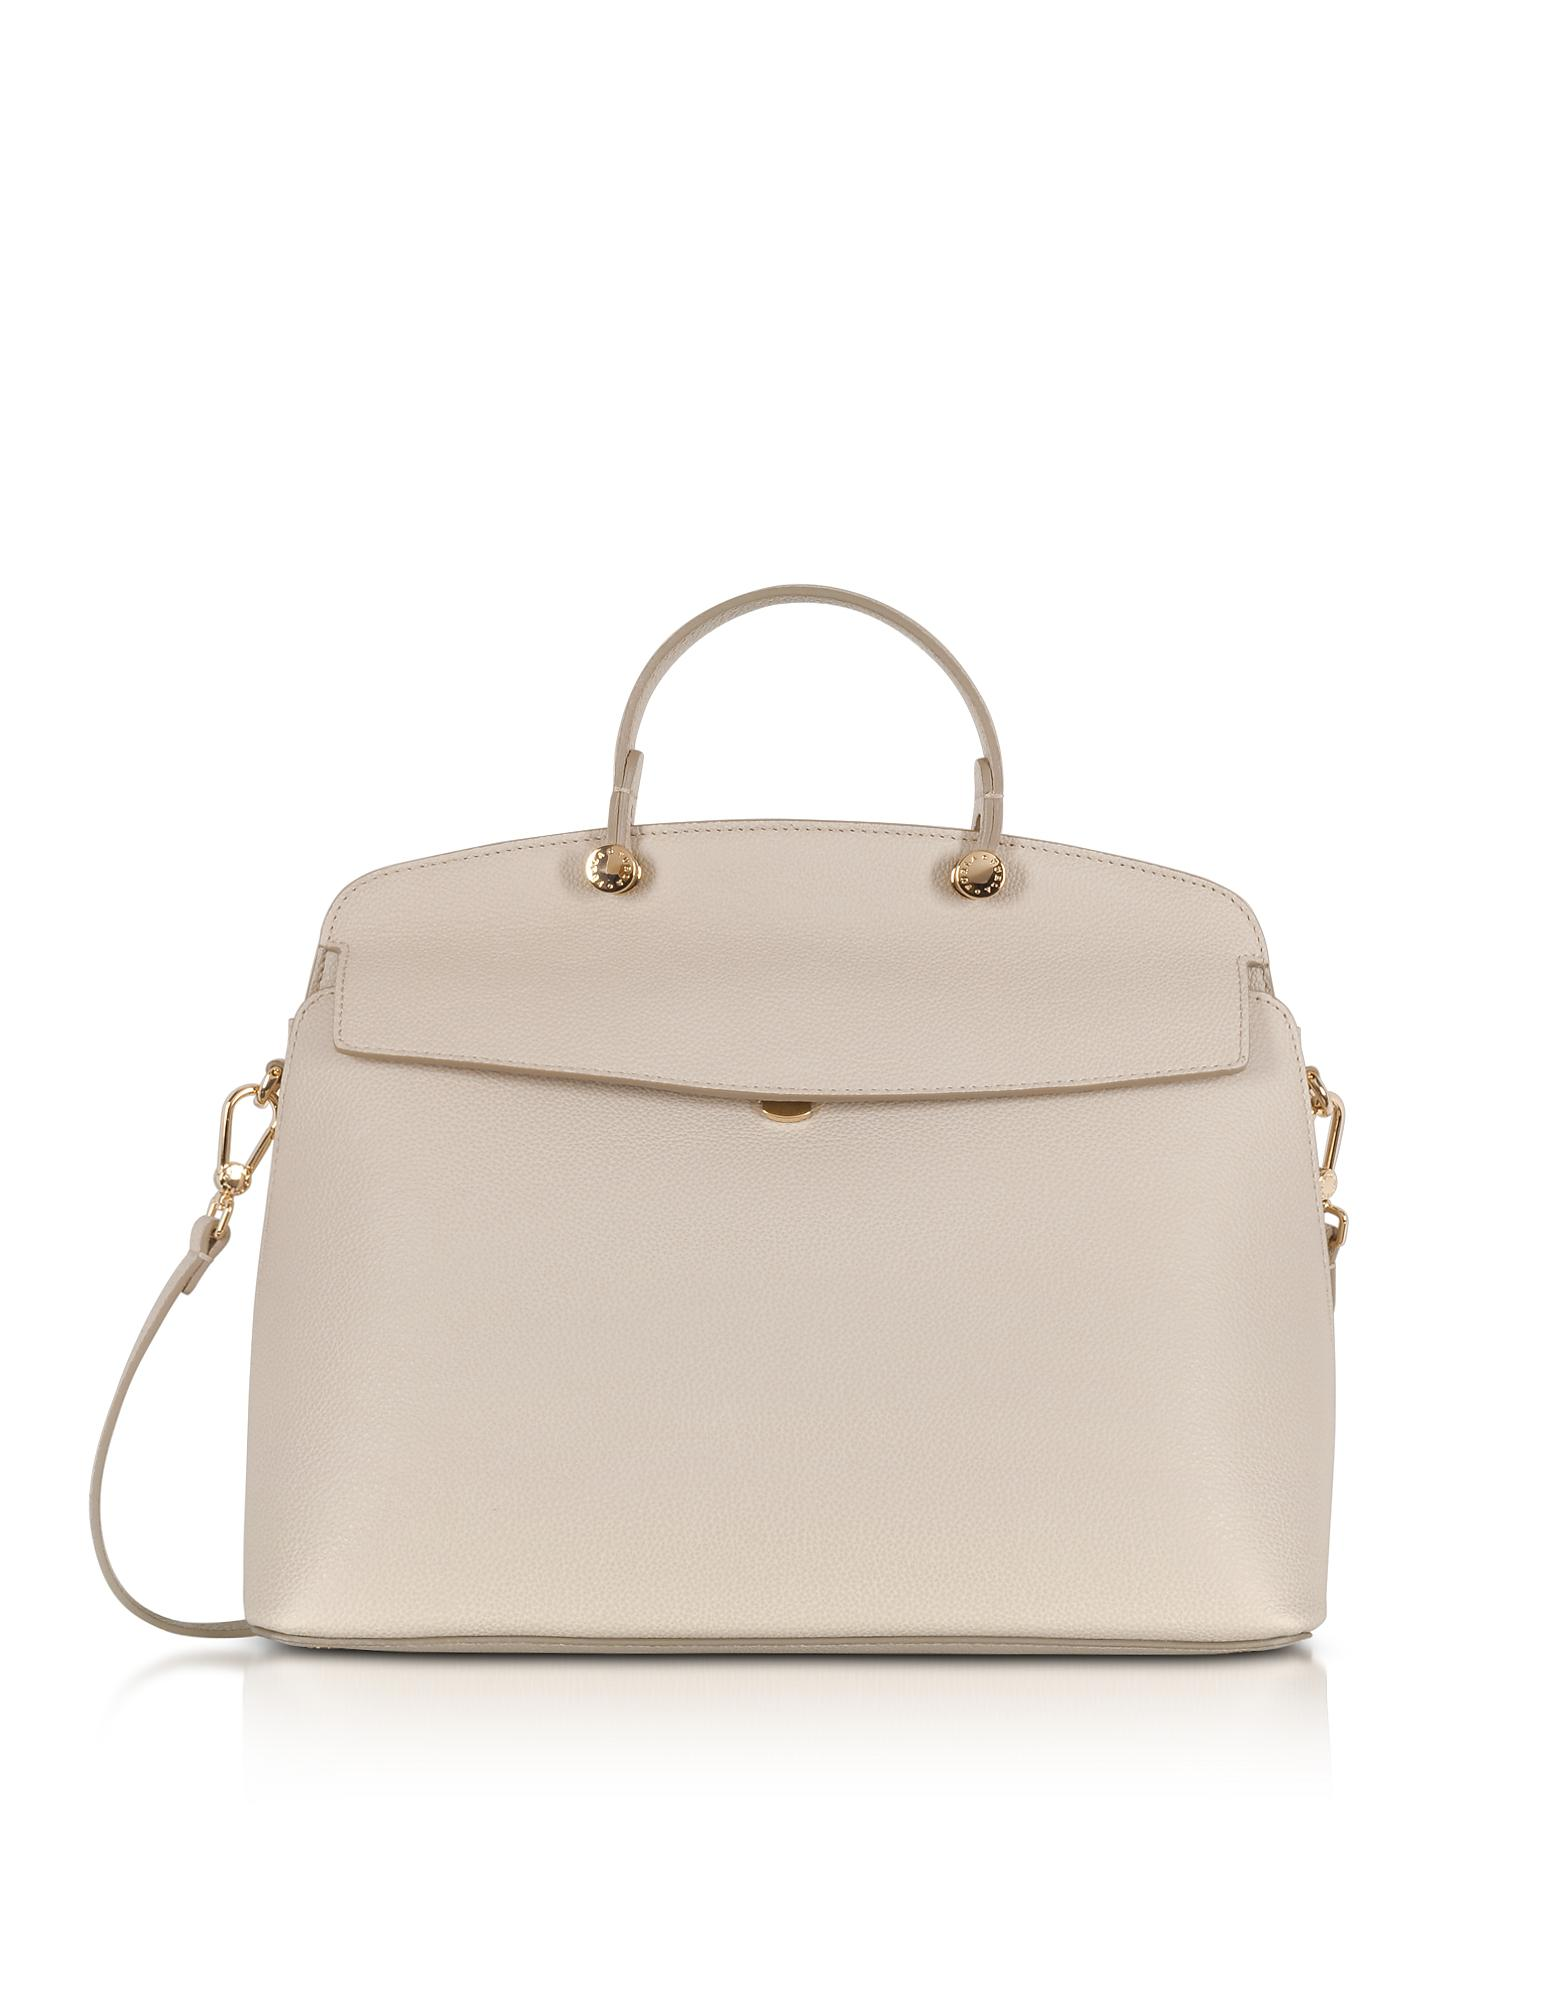 Furla Ice color My Piper bag cTTcAF9a7